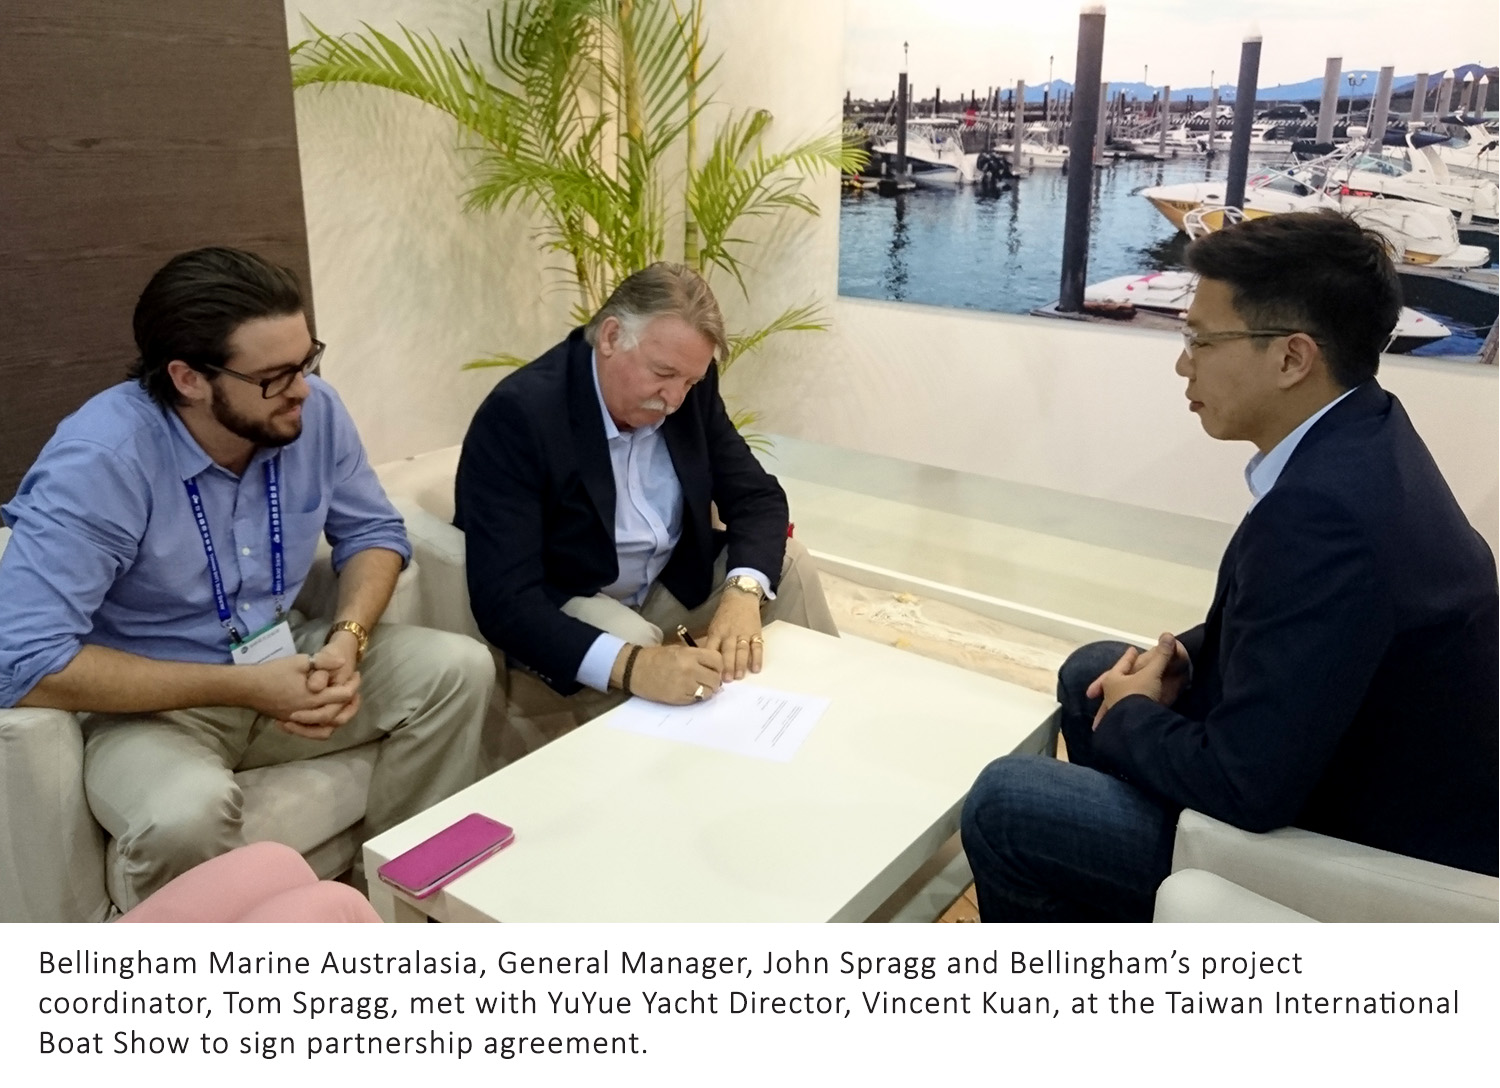 Bellingham Marine forms partnership with Taiwanese company to build marinas in Taiwan